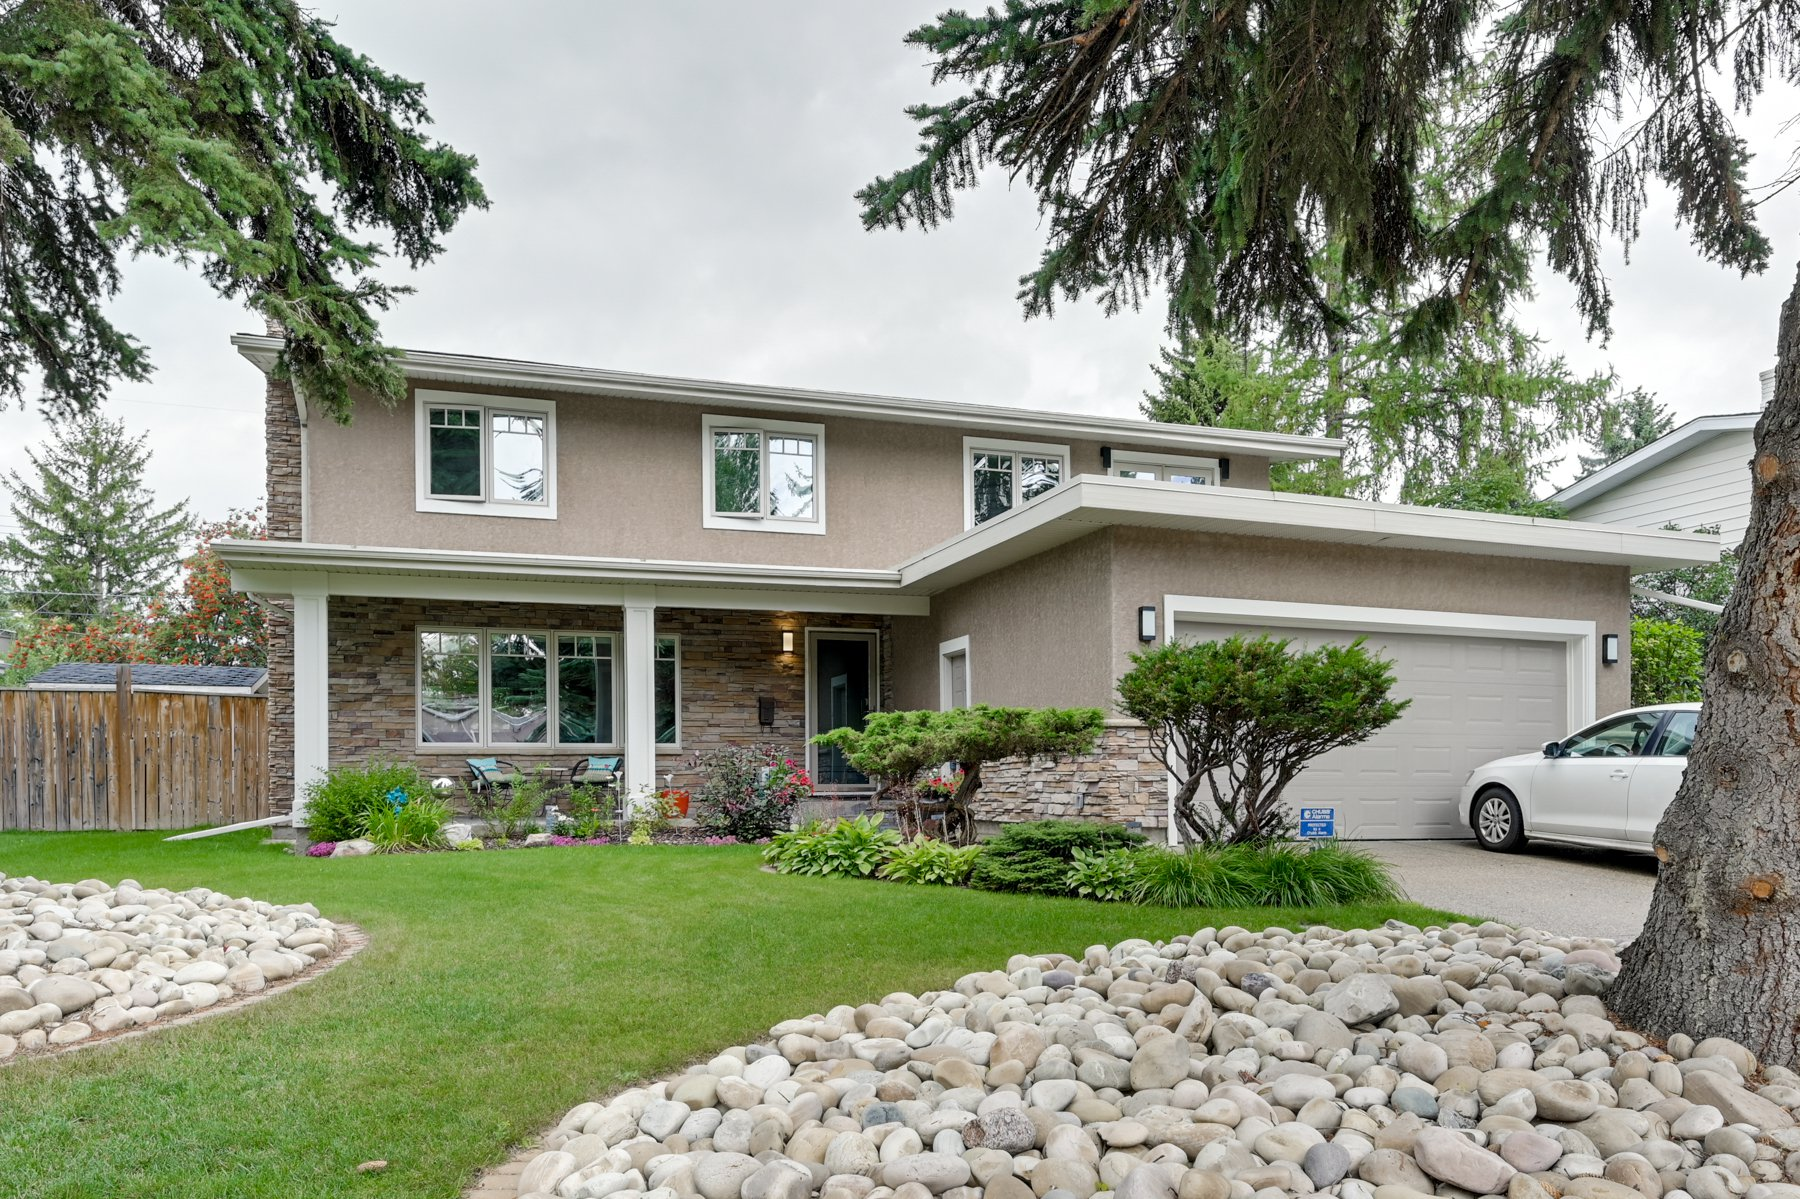 Main Photo: 6 Valleyview Crescent NW: Edmonton House for sale